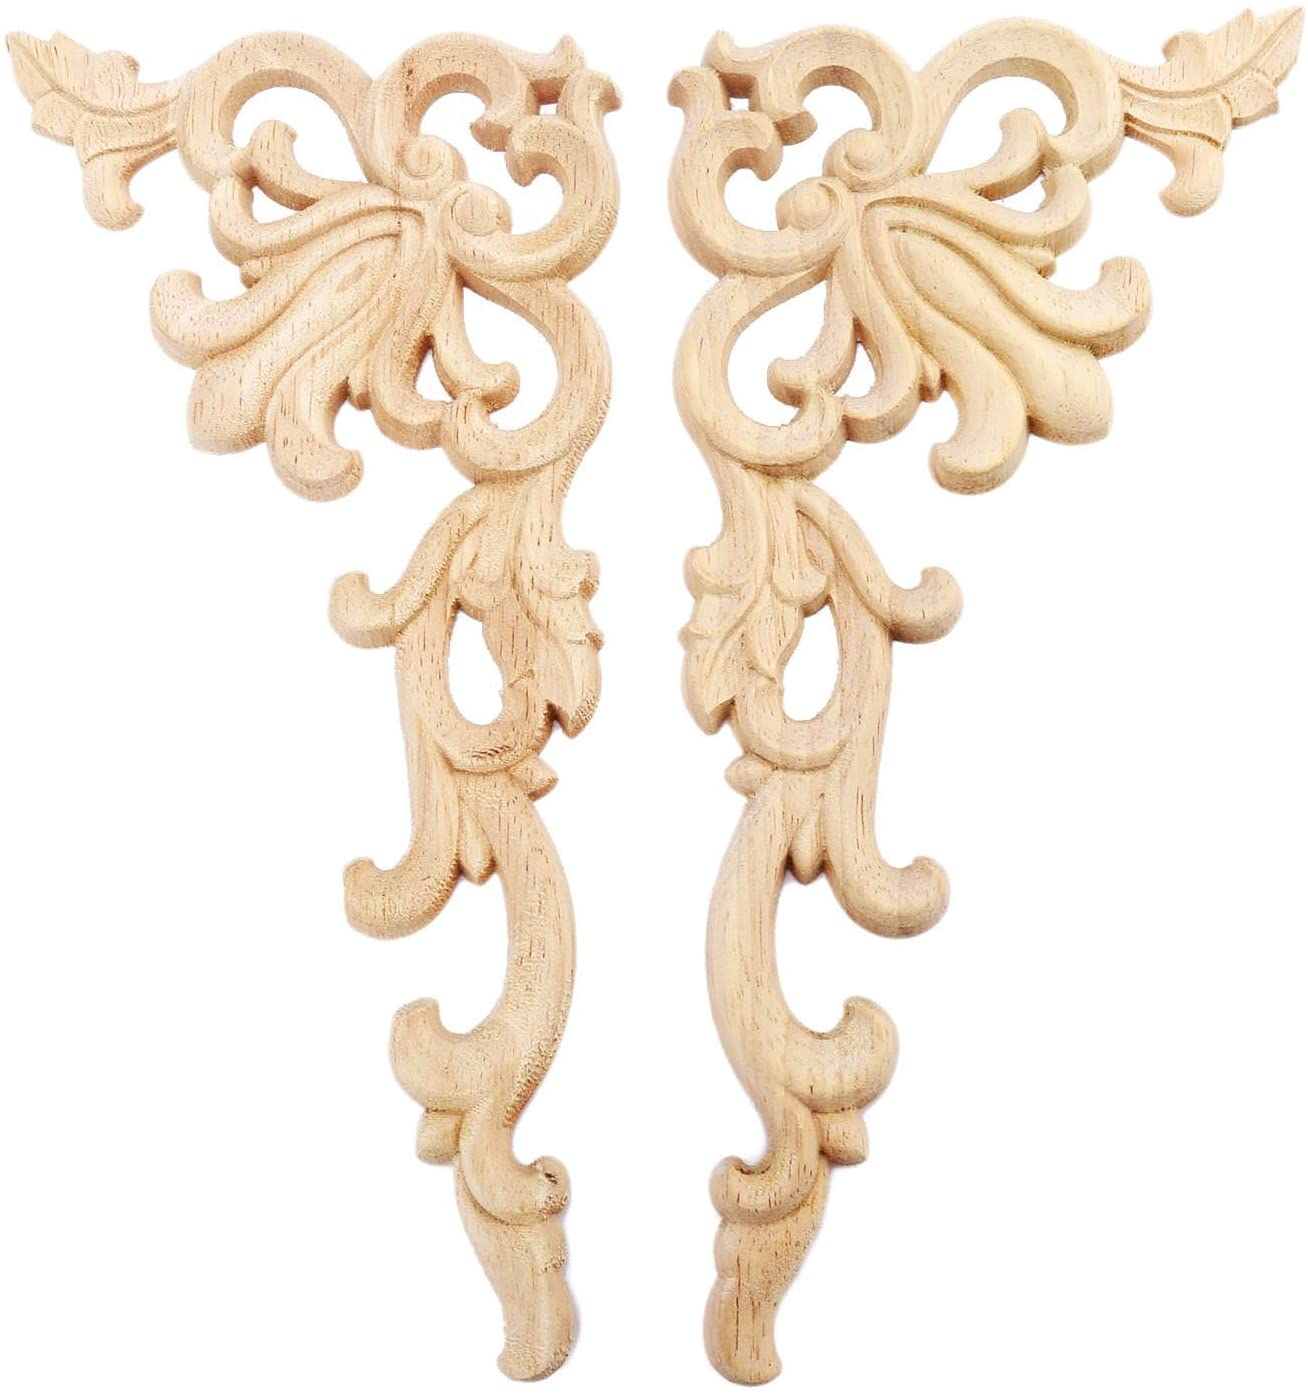 MUXSAM 2Pcs Wood Carved Corner Onlay Applique for Home Furniture Door Cabinet Unpainted Safety Decoration, 20X10Cm/7.87